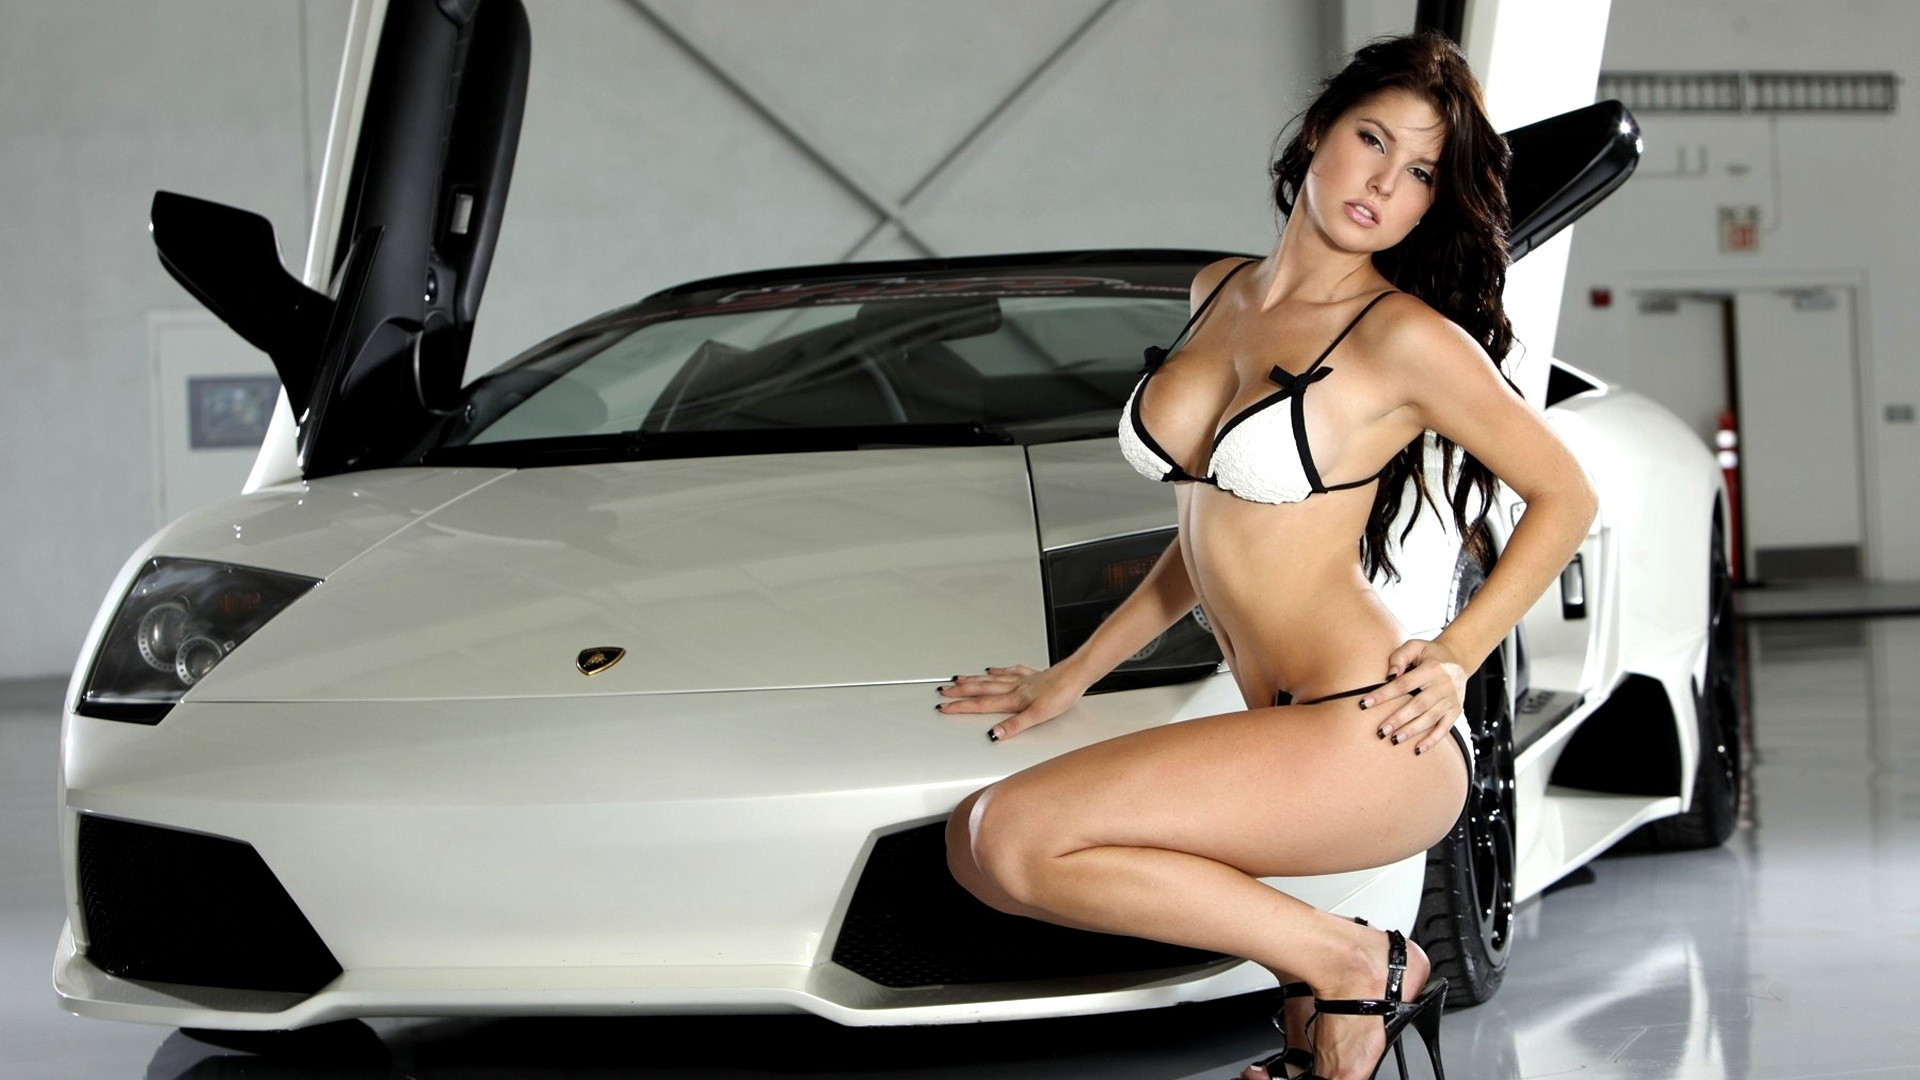 Hot Girls Fast Cars